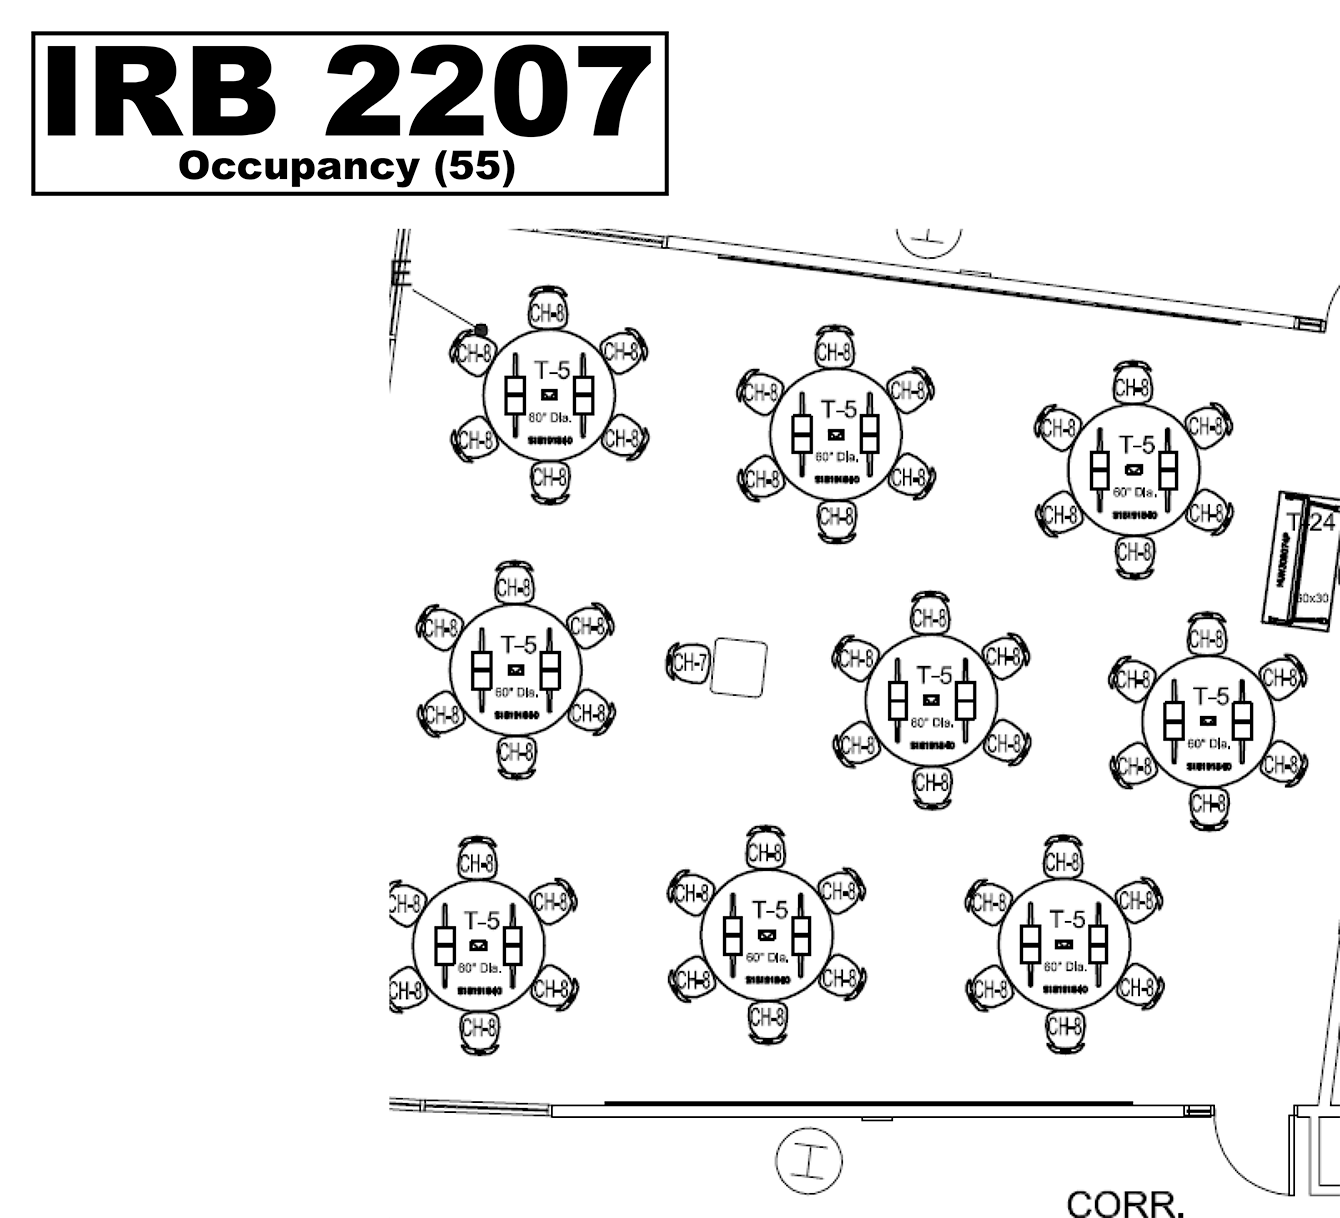 IRB2207 floorplan